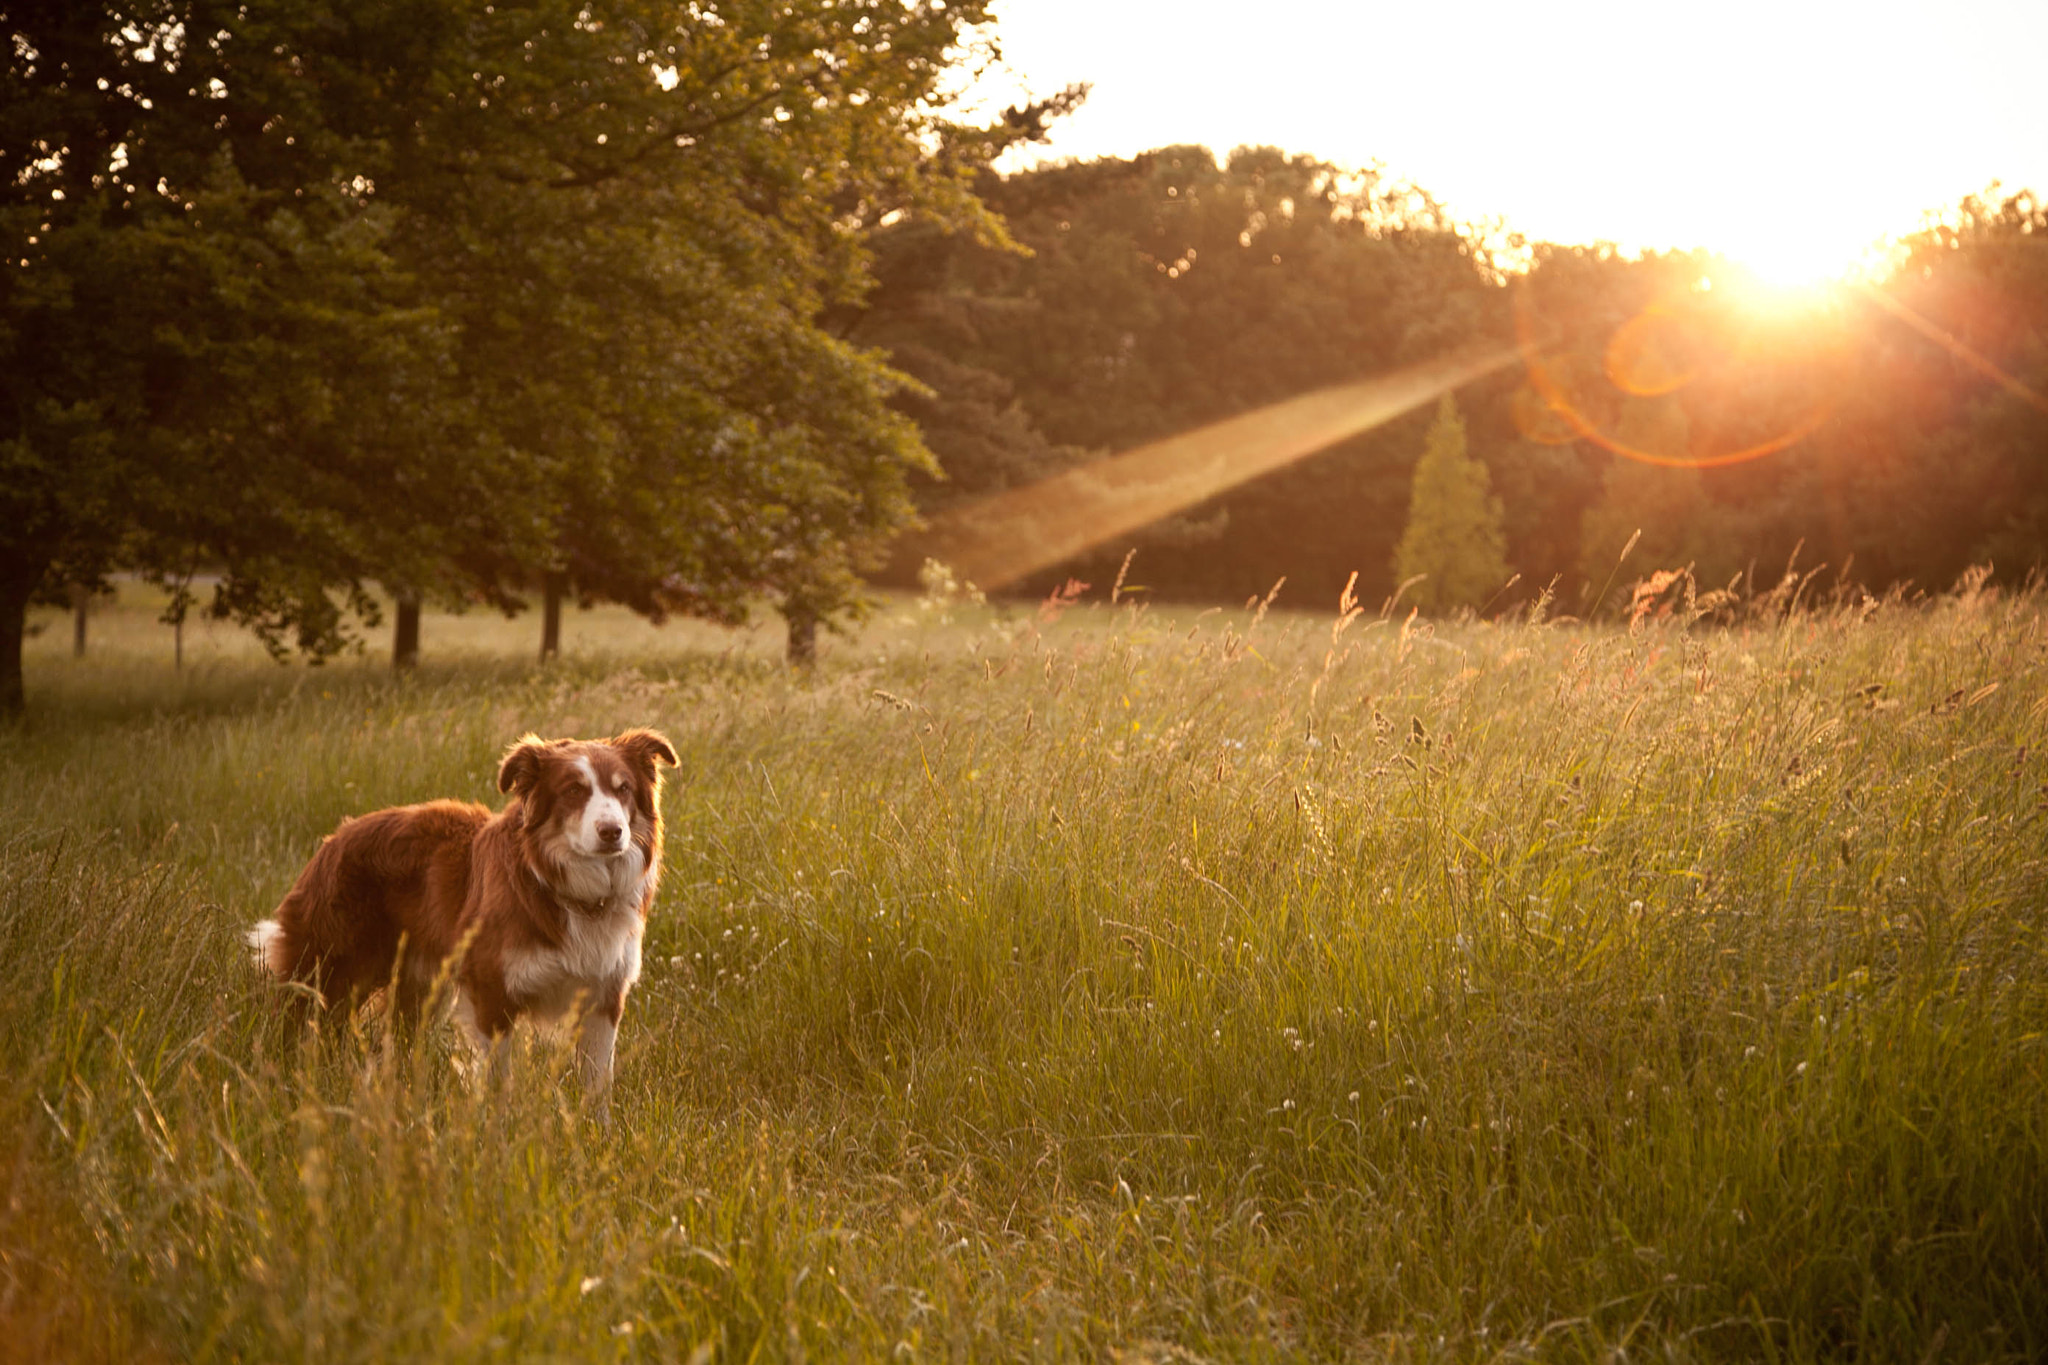 Photograph Late summer afternoons by Anna Goodrum on 500px